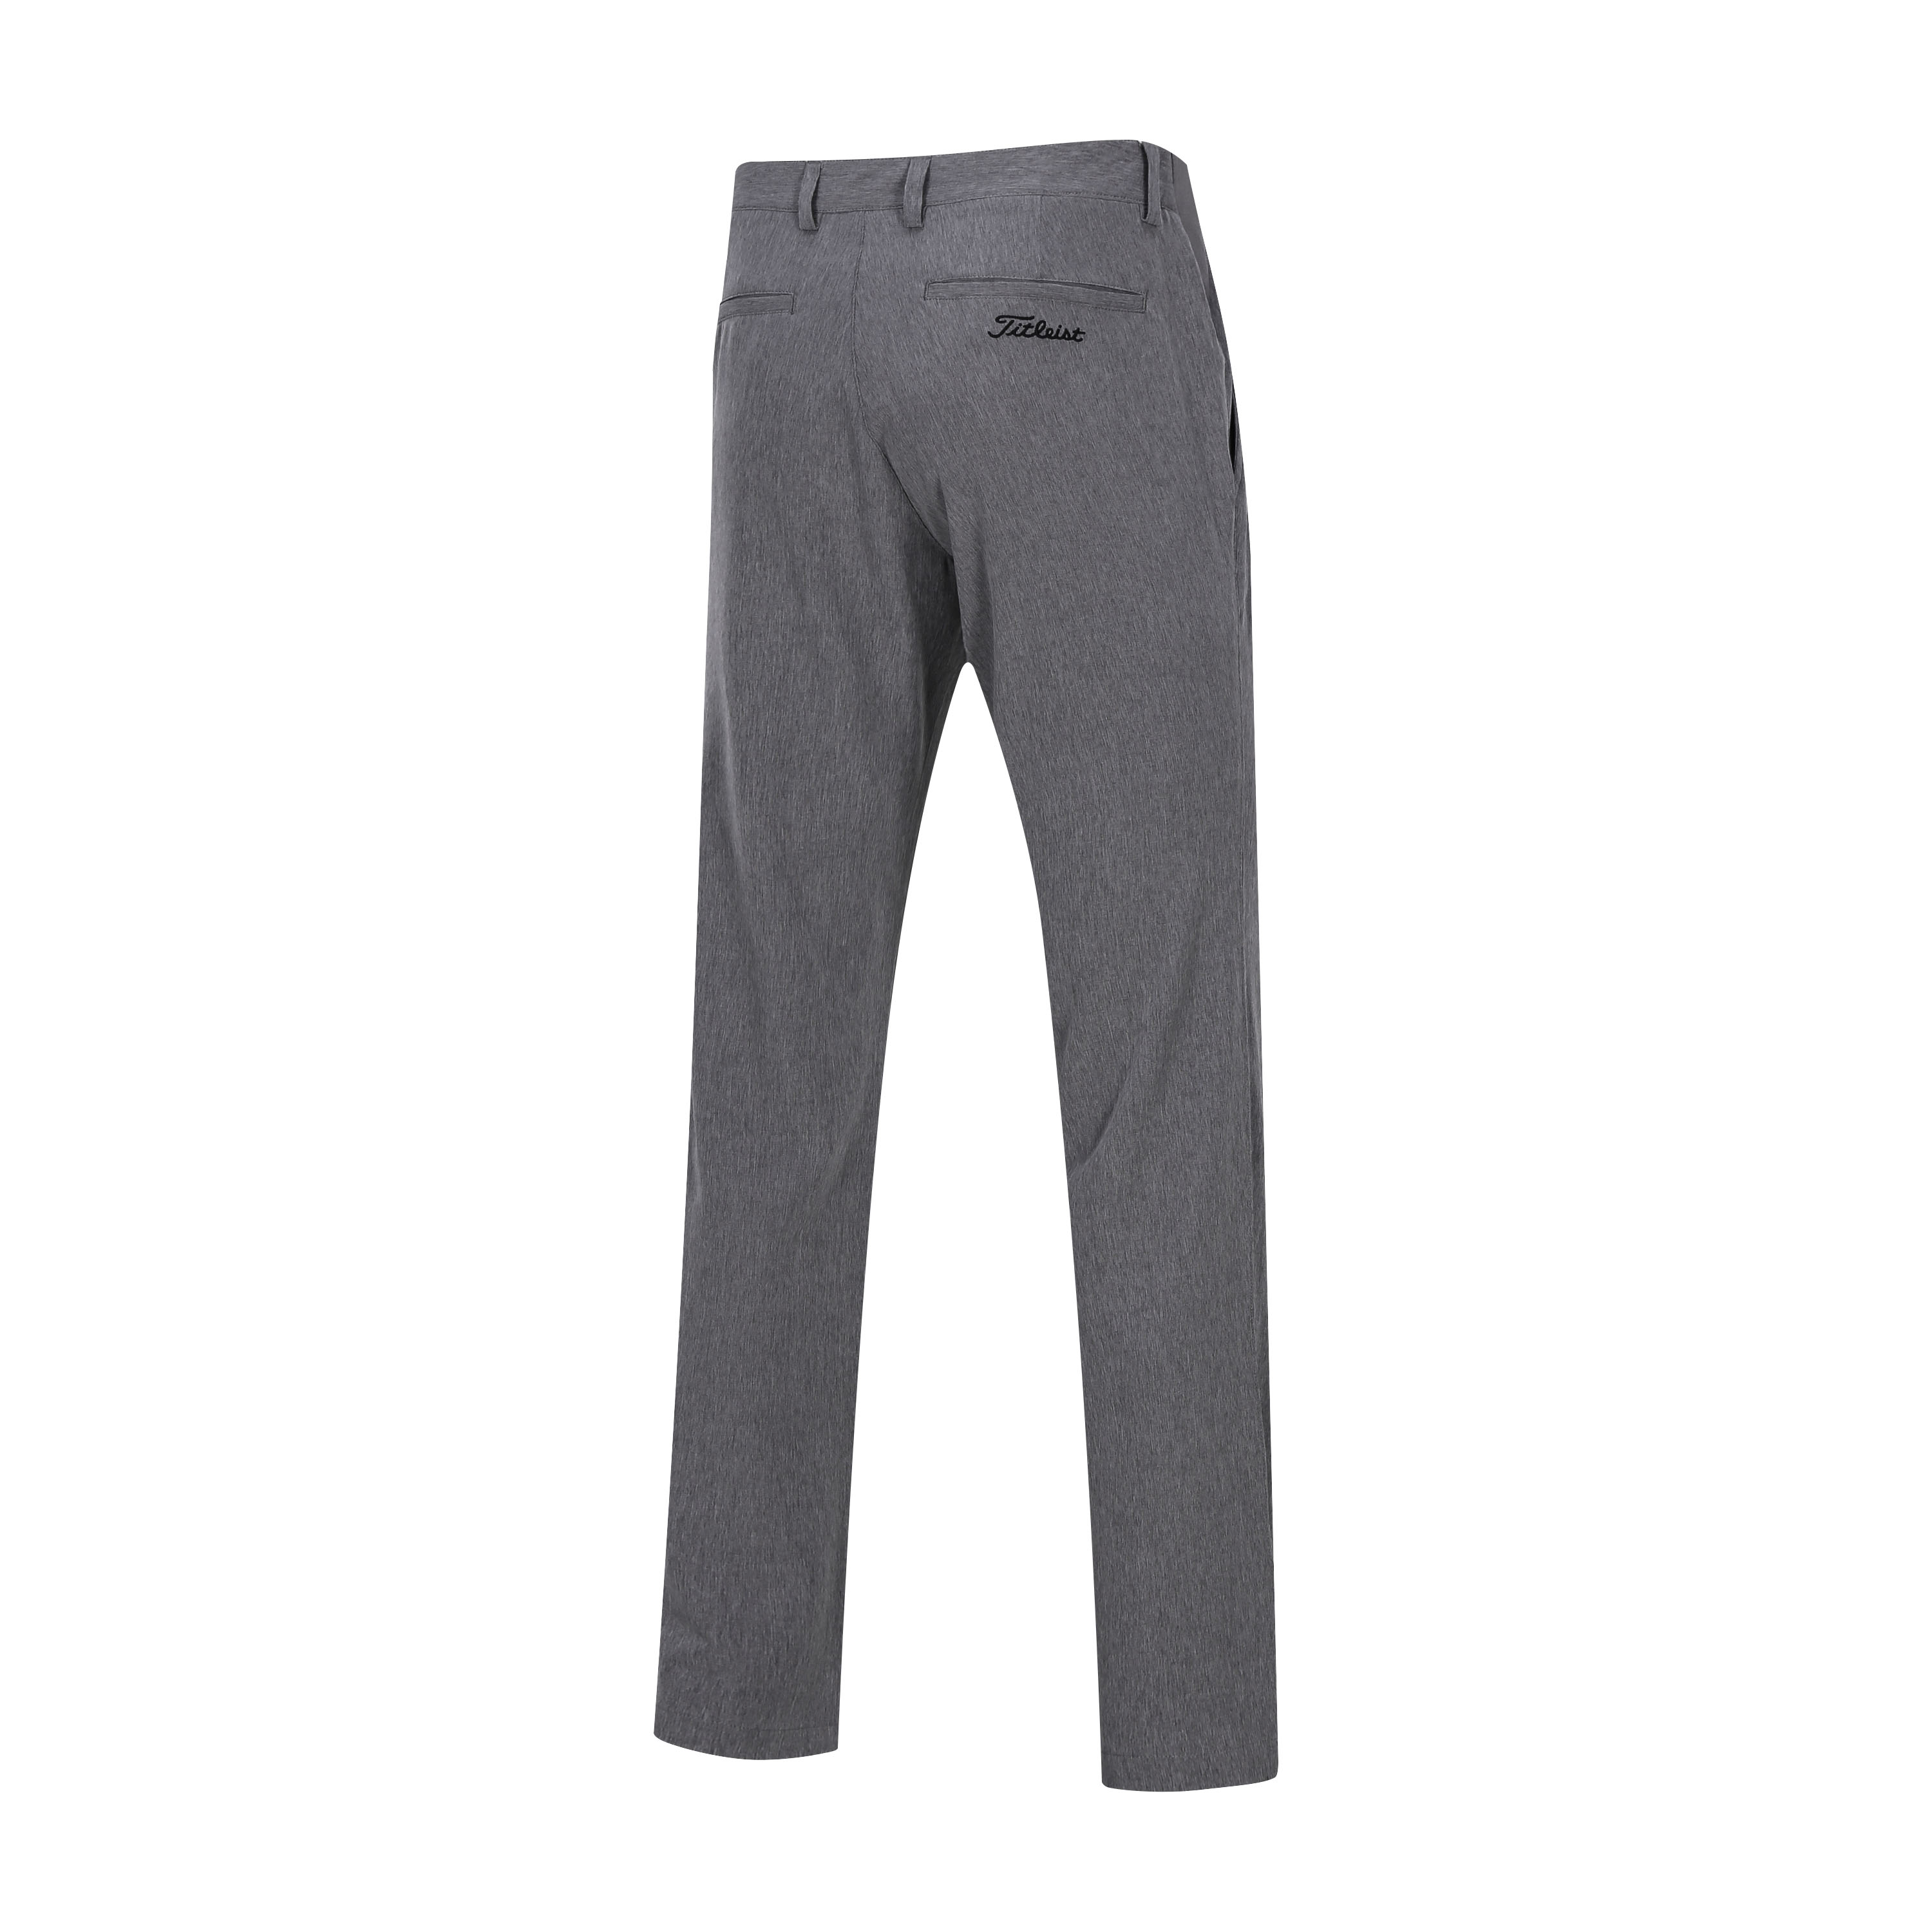 New golf pants for men in summer 2020 Golf men's pants title=